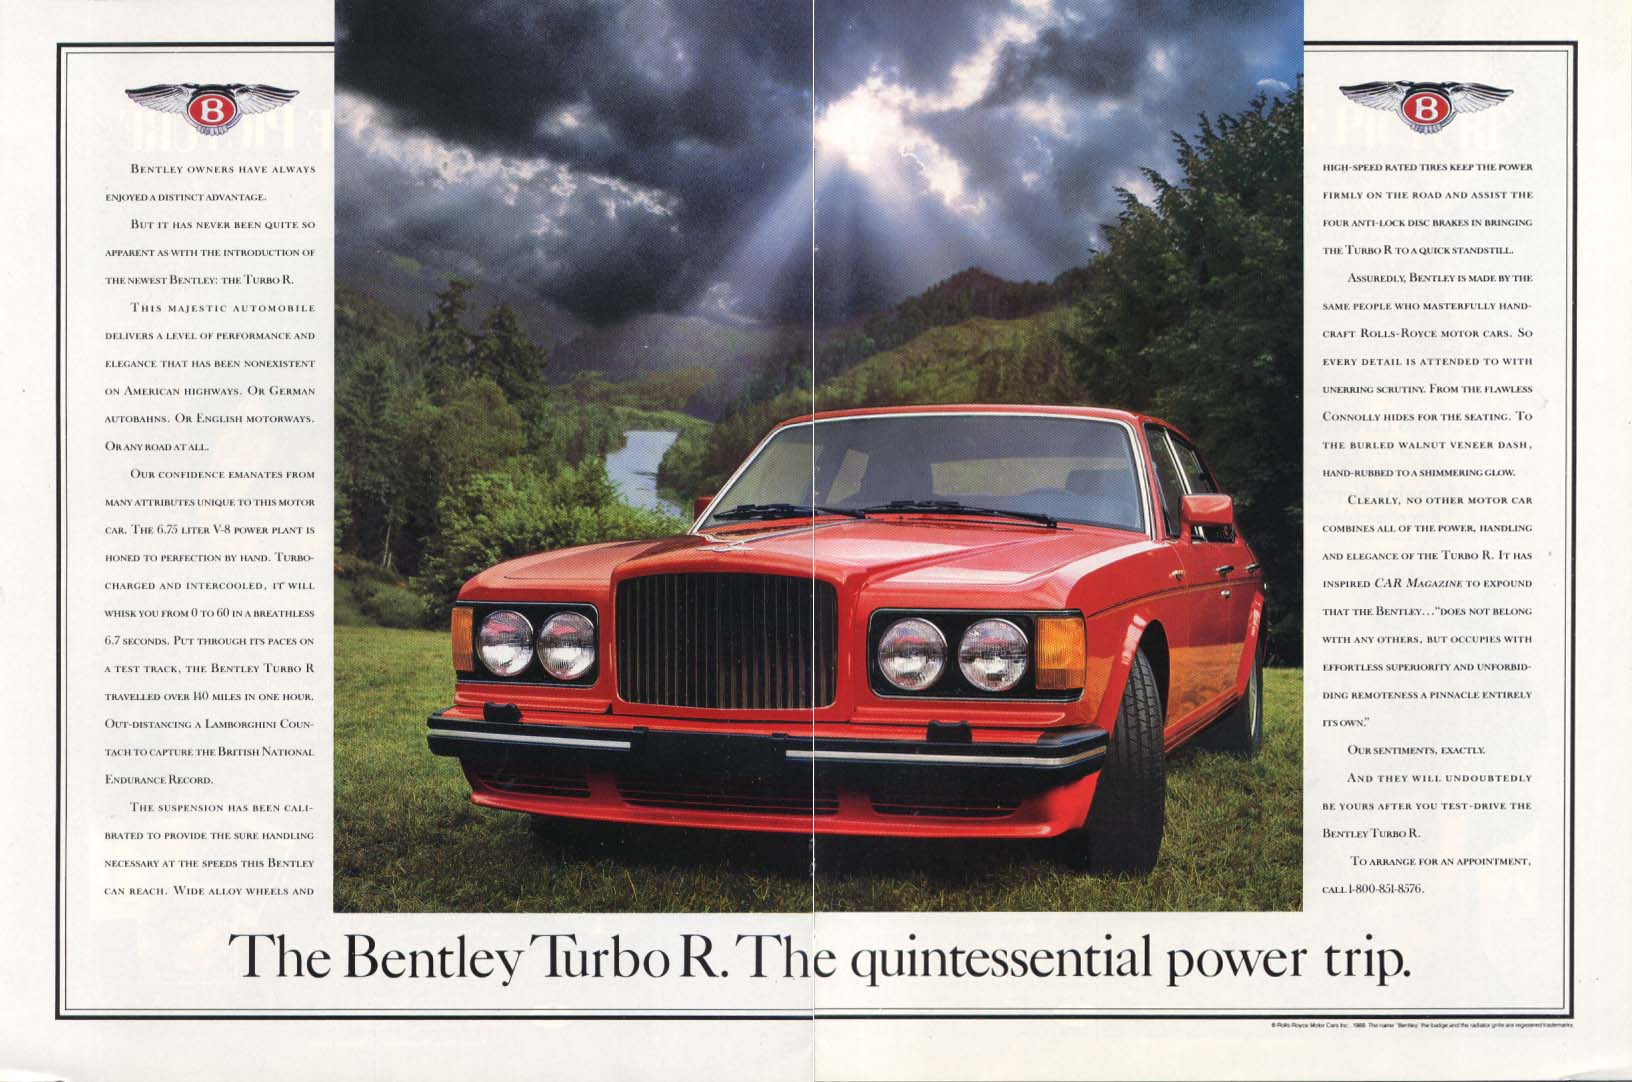 Image for The Bentley Turbo R Quintessential power trip ad 1988